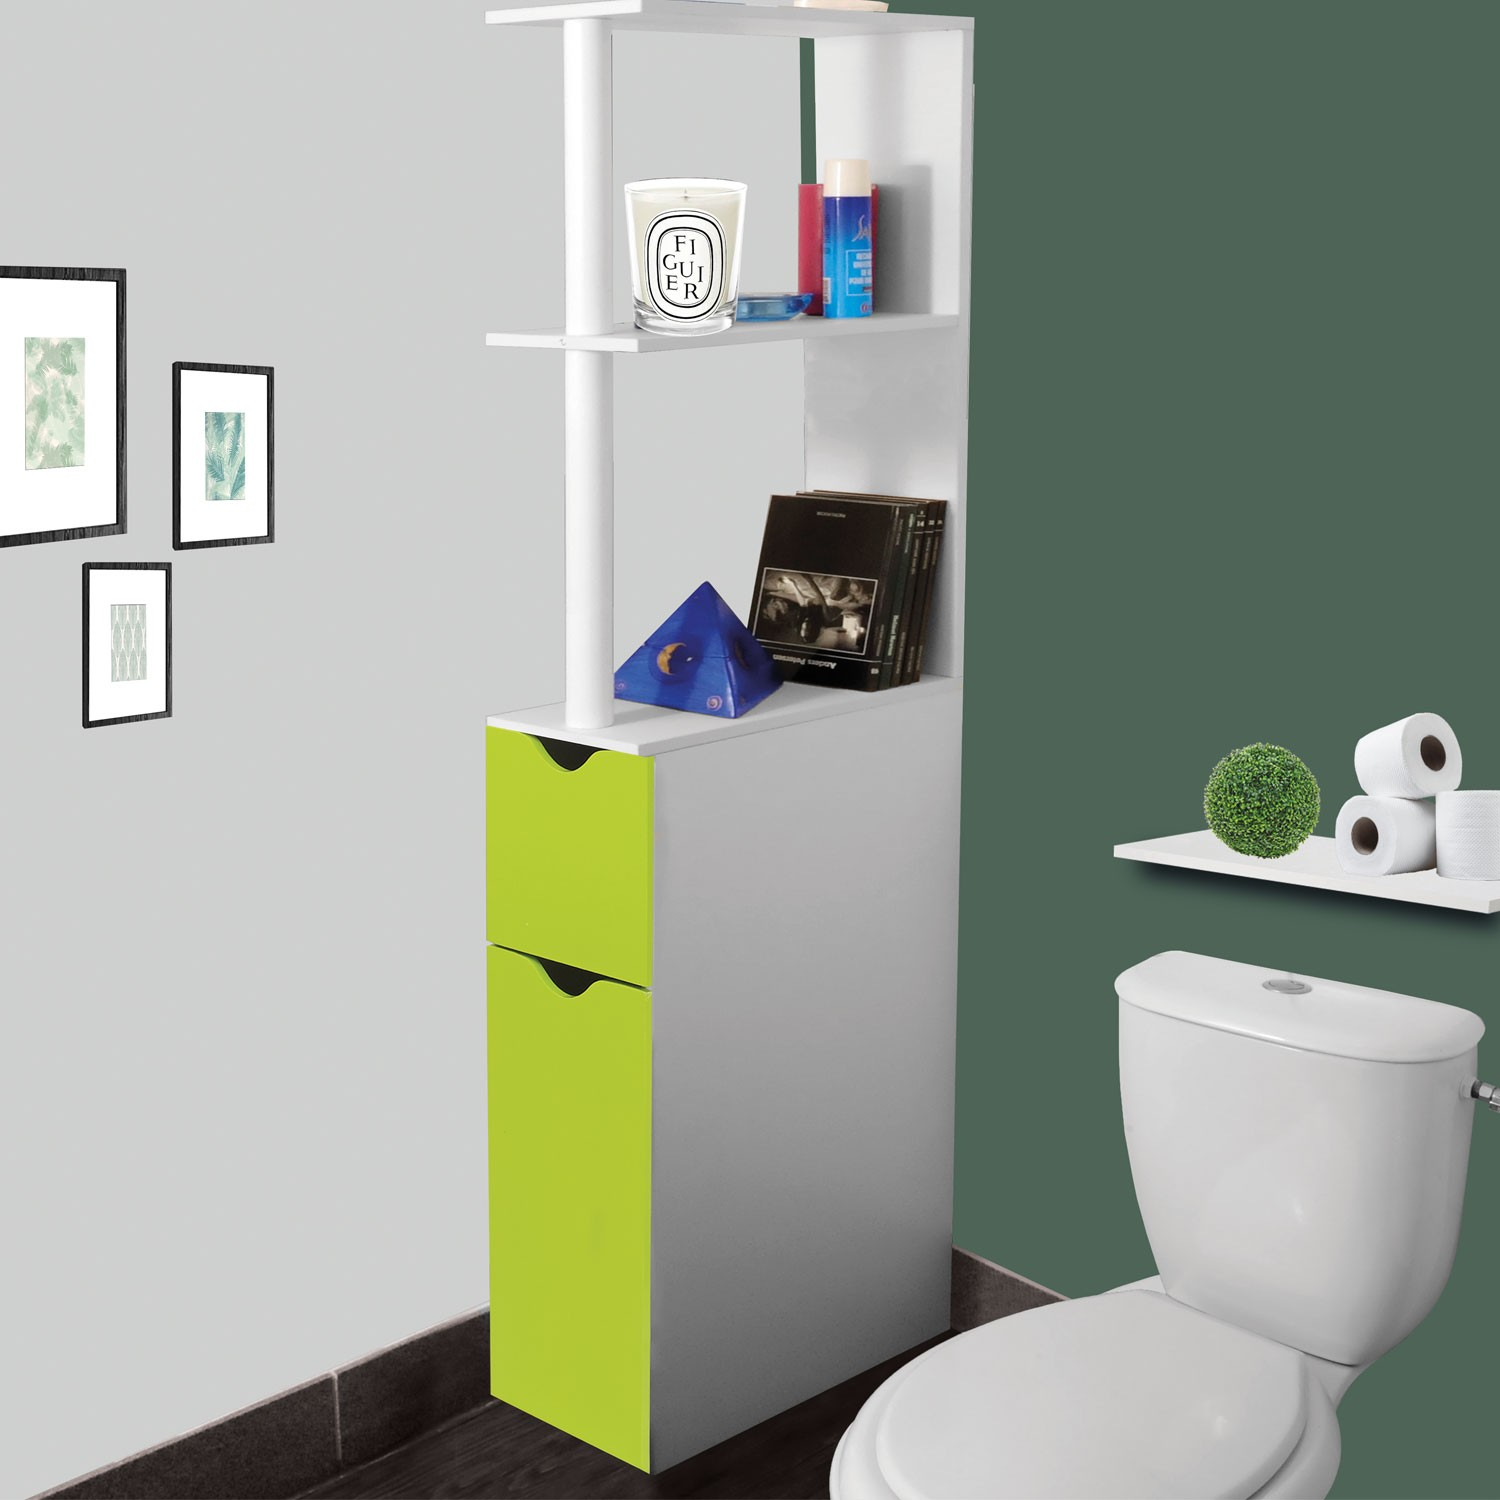 meuble wc tag re bois gain de place pour toilette 2 portes vertes. Black Bedroom Furniture Sets. Home Design Ideas